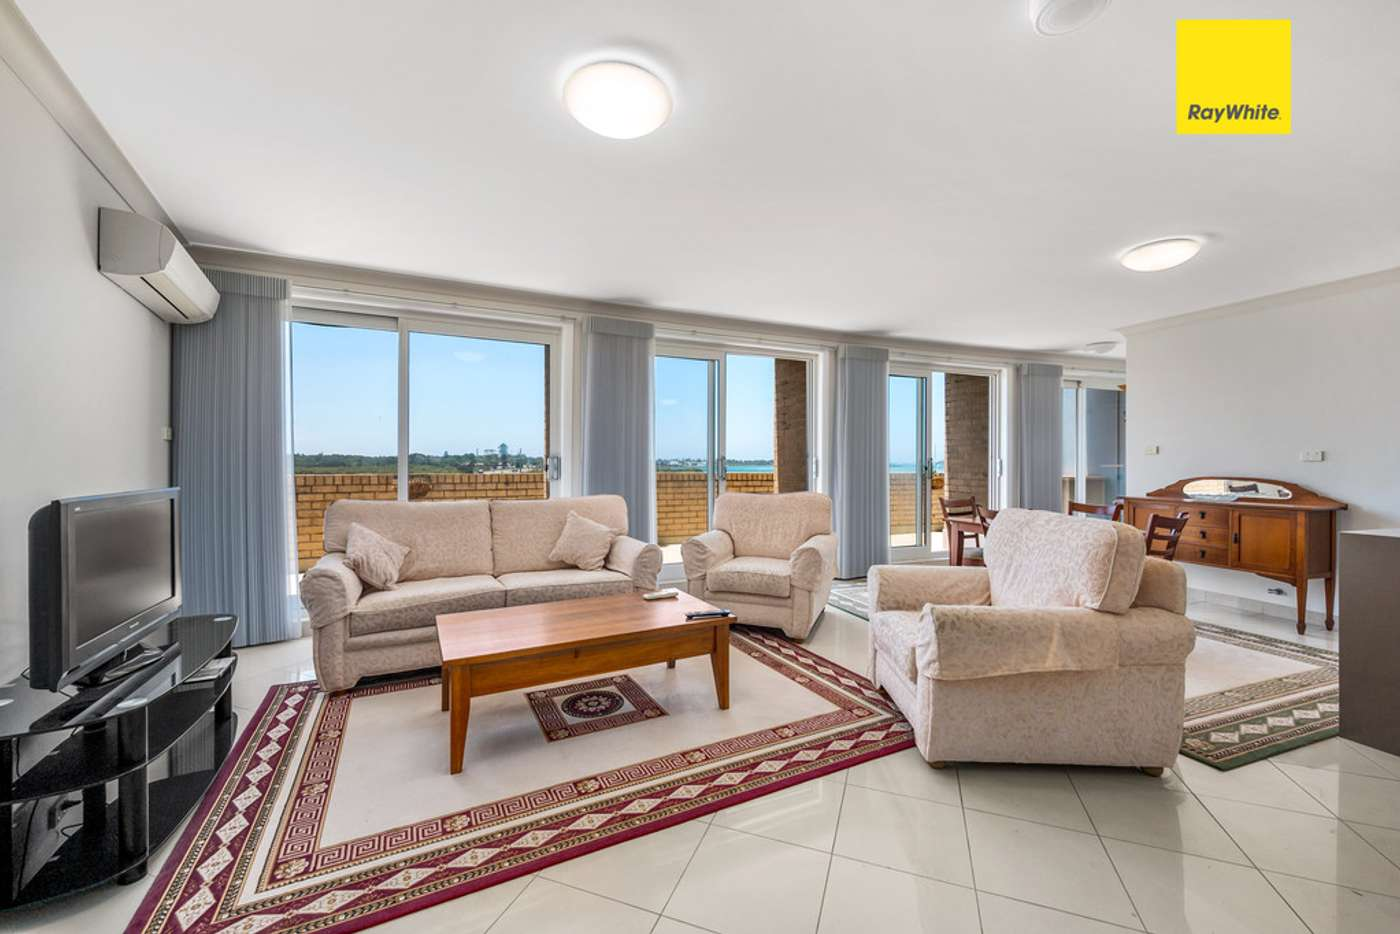 Seventh view of Homely apartment listing, 24/2 Belmont Street, Swansea NSW 2281